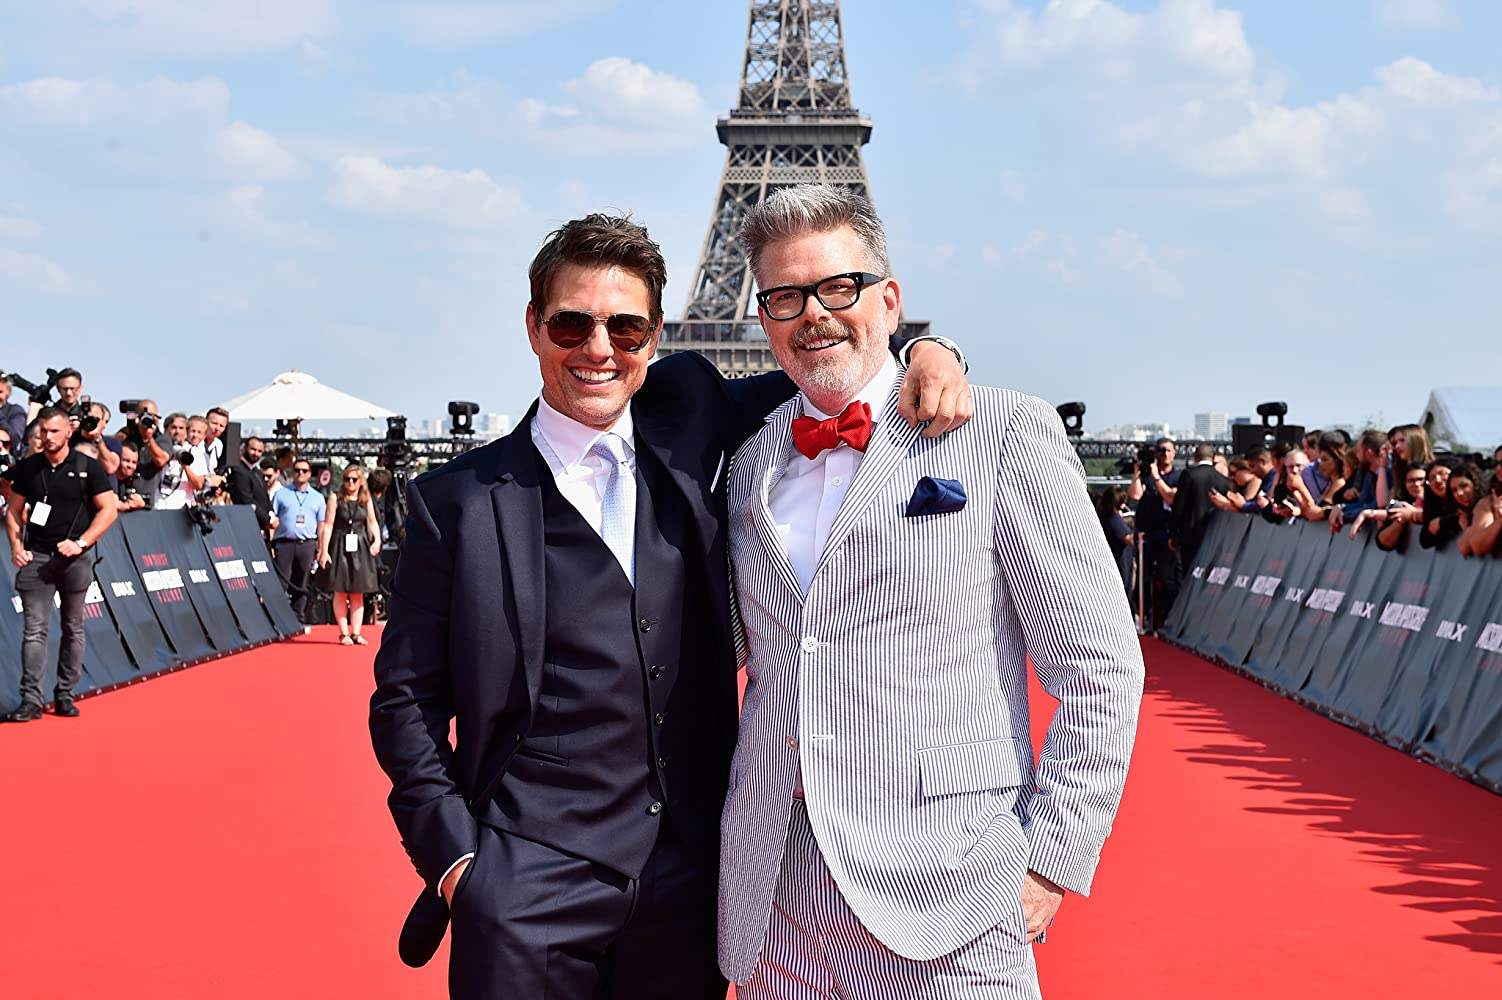 Tom Cruise and Christopher McQuarrie at an event for Mission: Impossible - Fallout (2018)